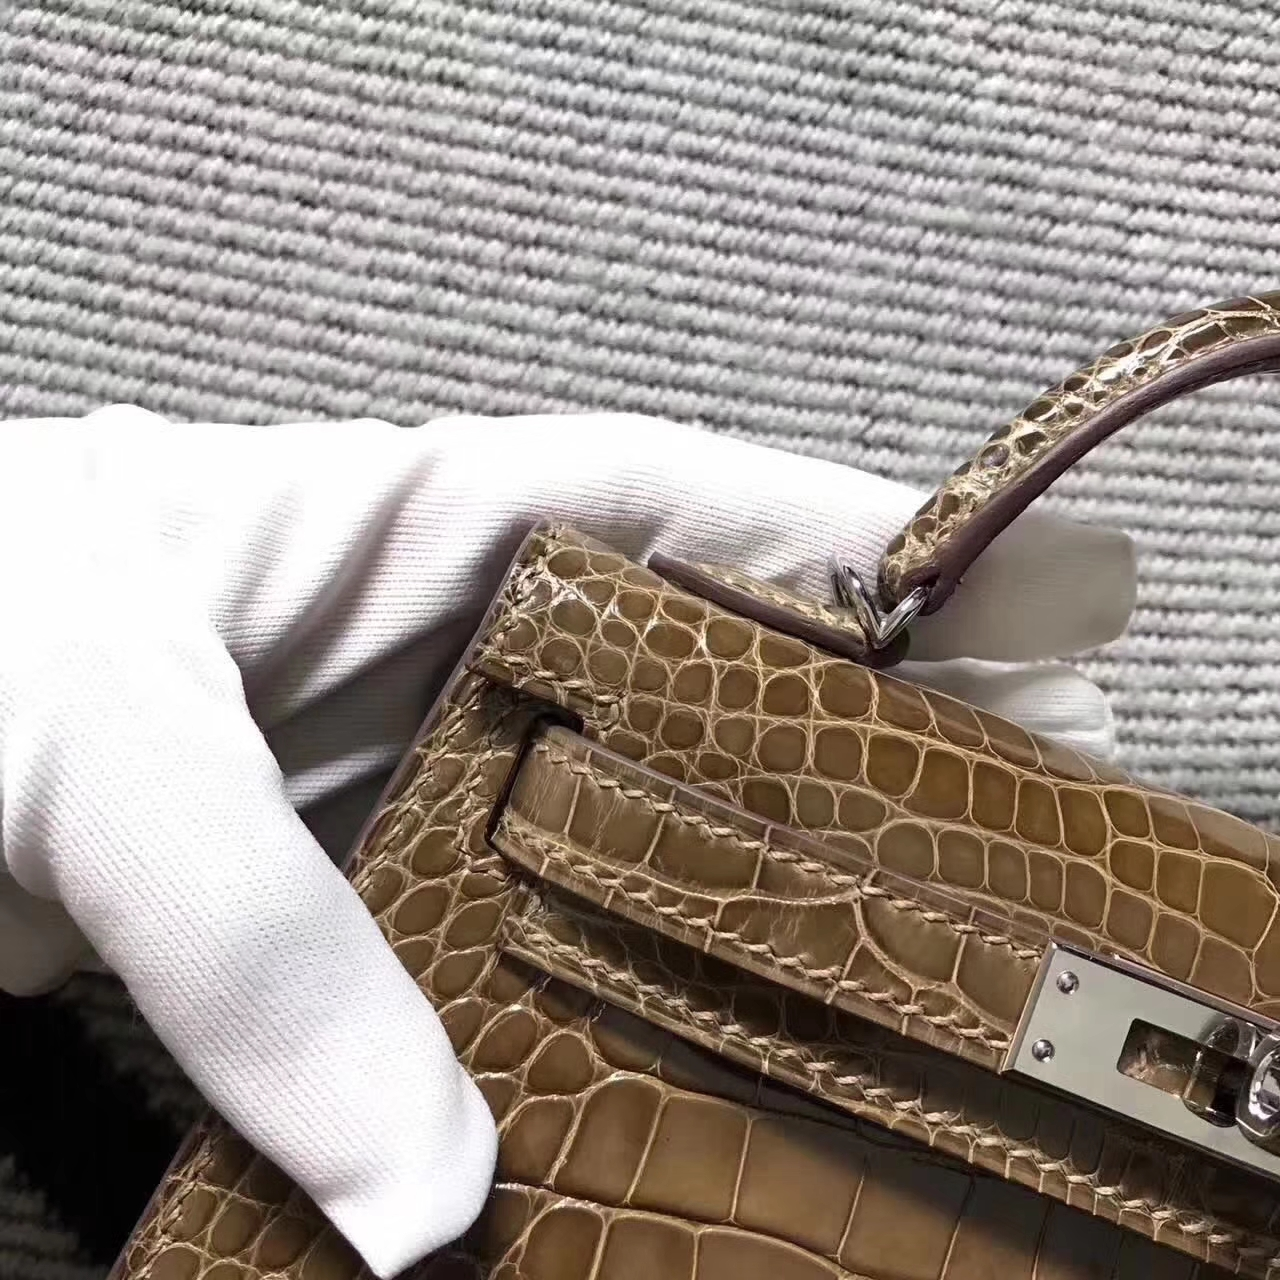 New Arrival Hermes Minikelly-2 Clutch Bag in Brown Crocodile Leather